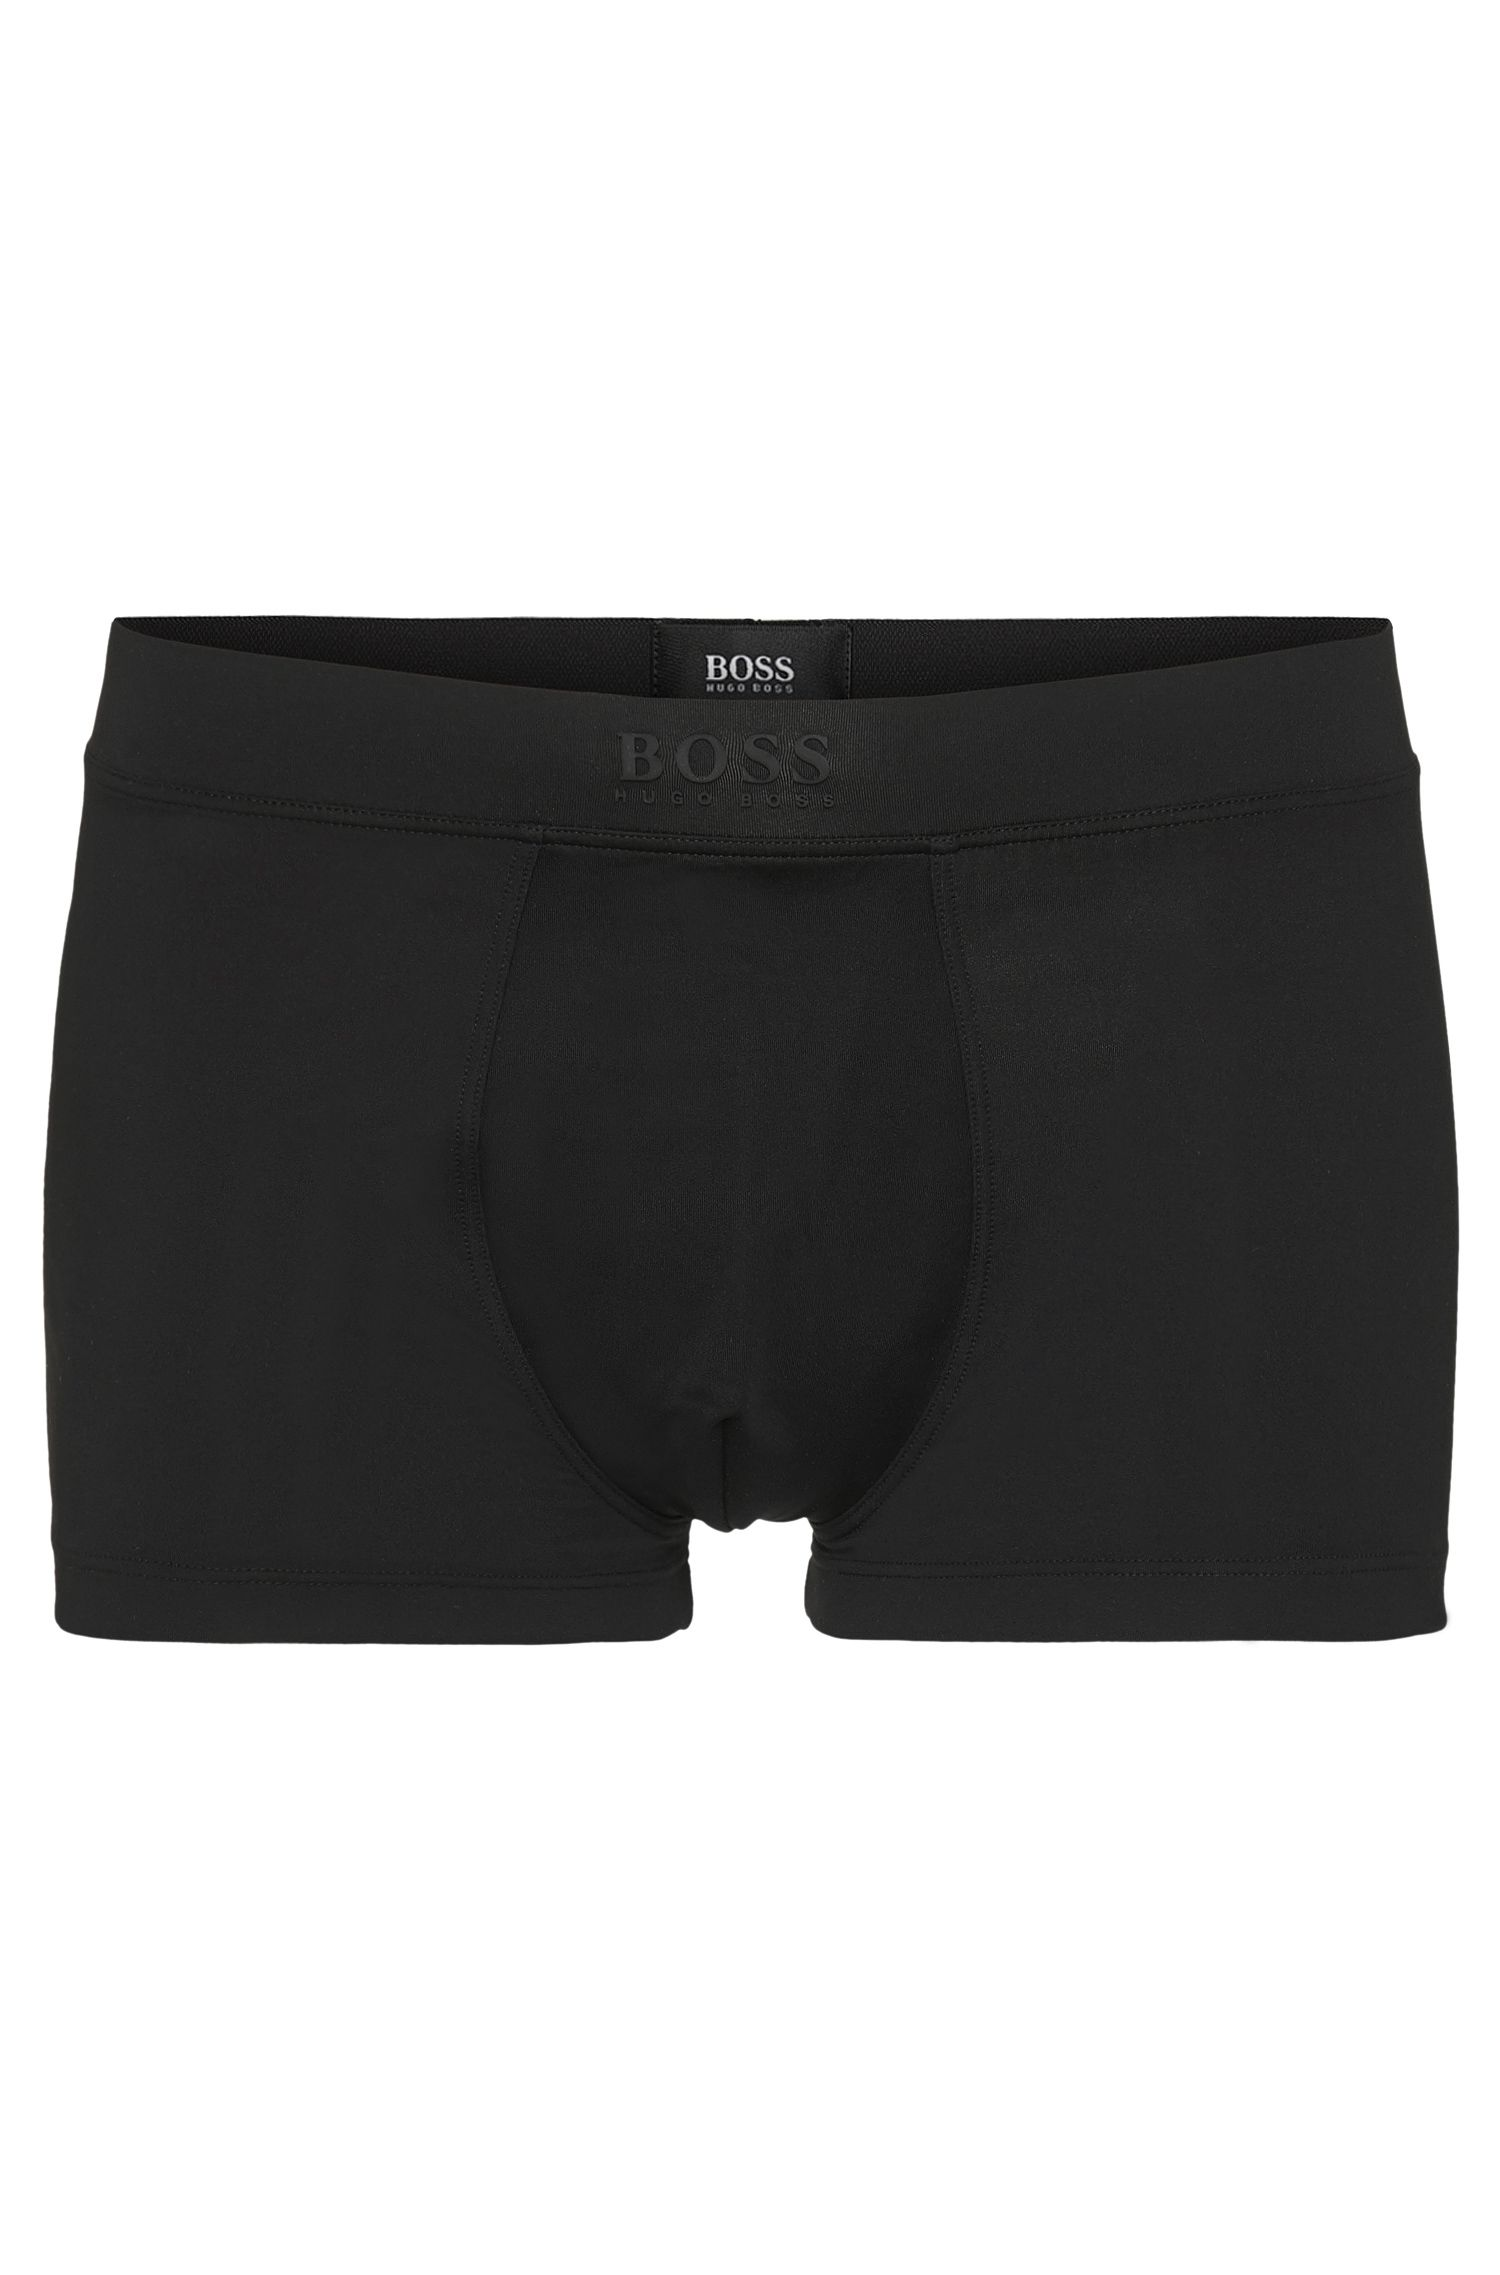 Boxers Regular Rise en tissu stretch